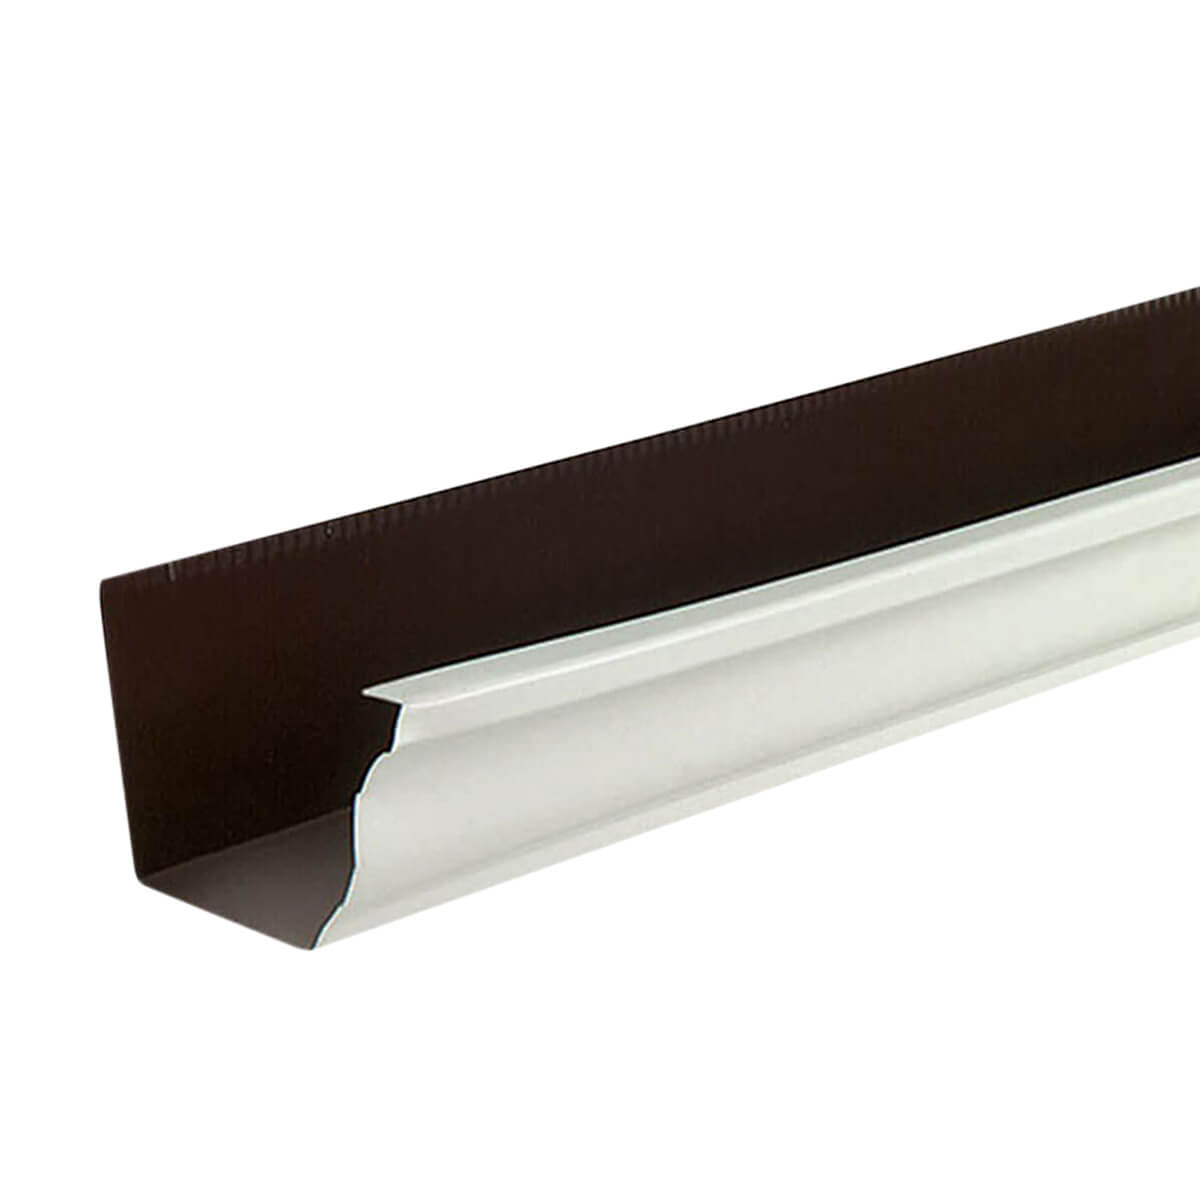 Aluminum Eavestrough - Brown